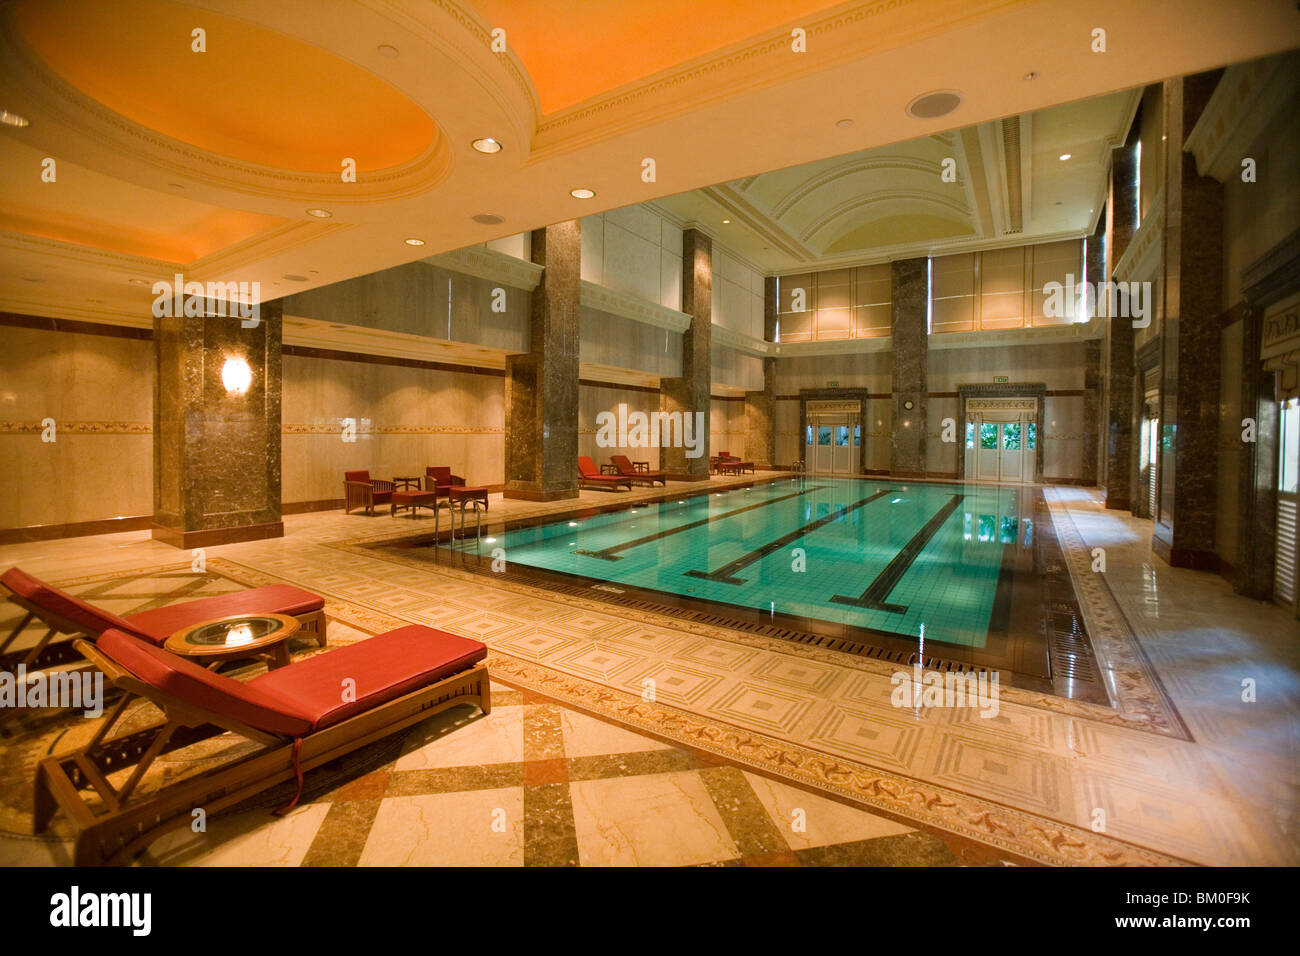 Empire hotel indoor pool the empire hotel country club - Centrepoint hotel brunei swimming pool ...